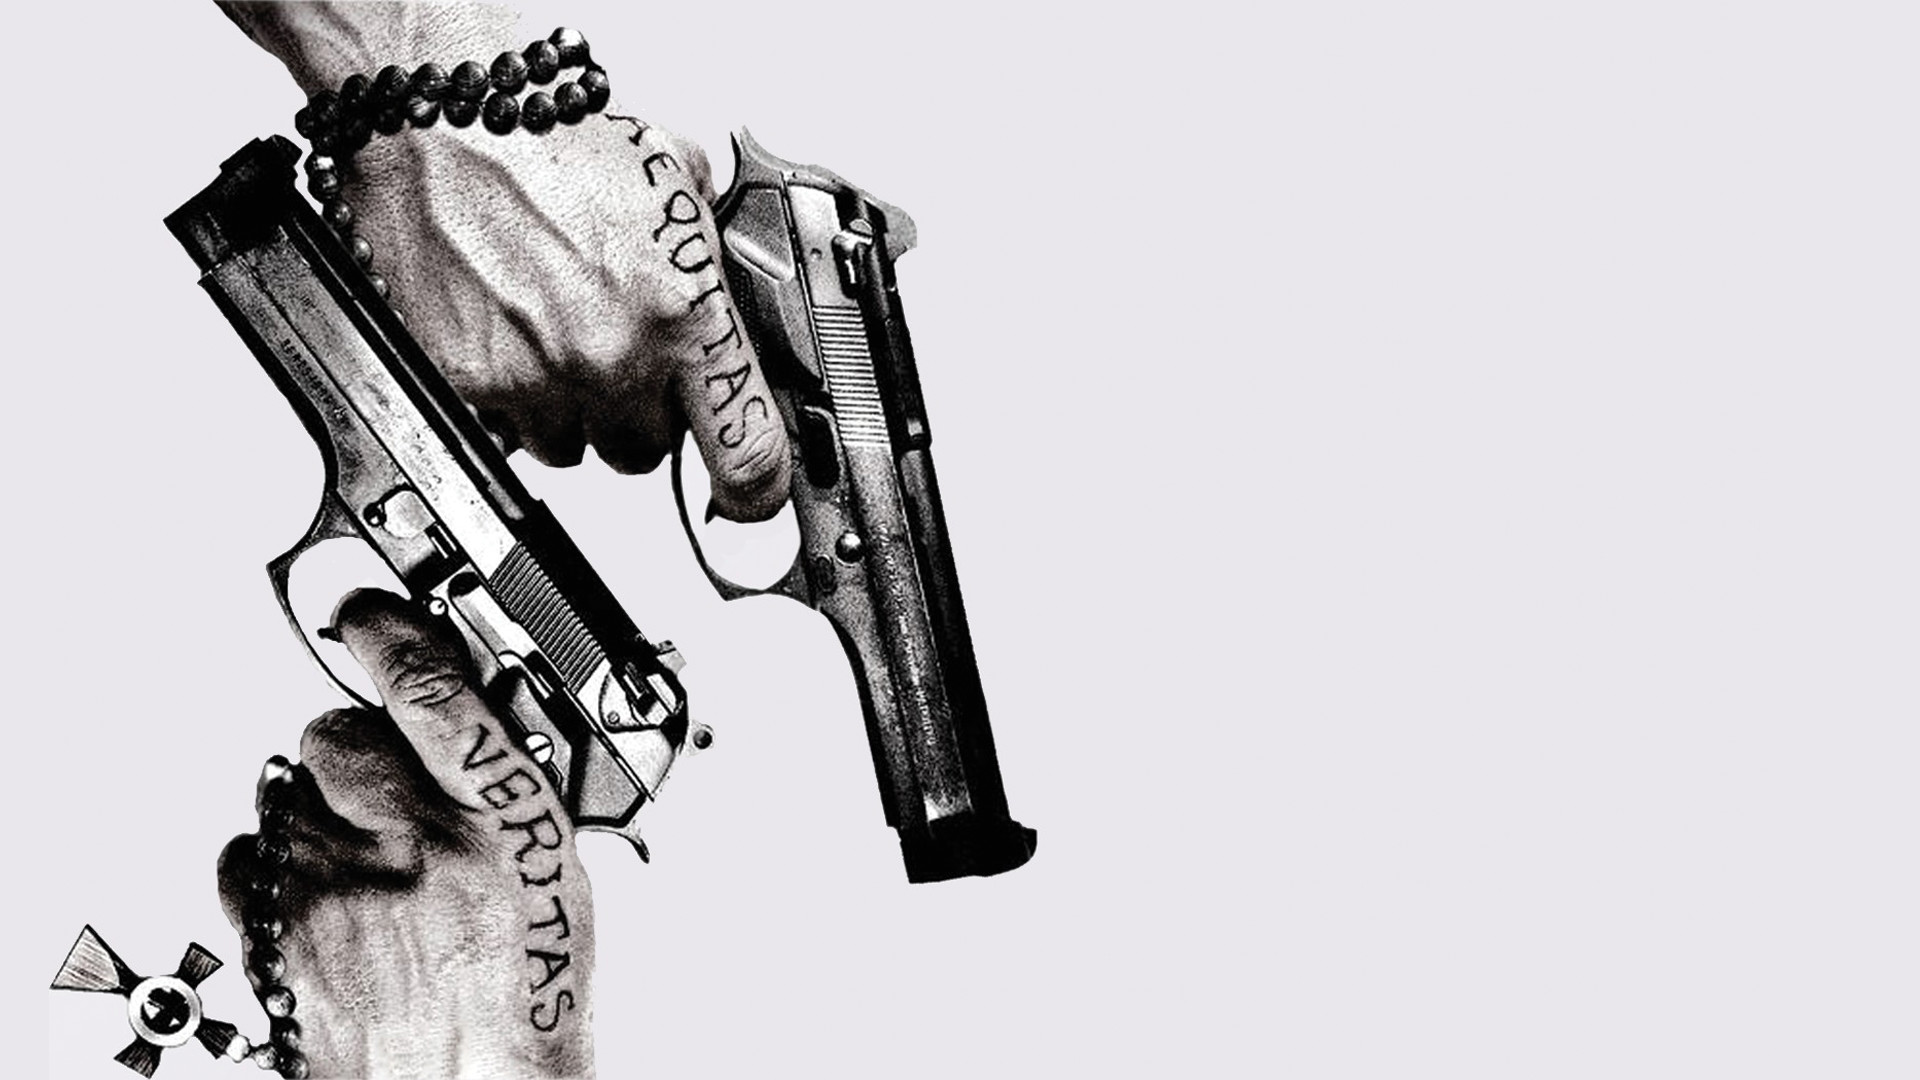 Res: 1920x1080, 21 The Boondock Saints HD Wallpapers | Backgrounds - Wallpaper Abyss